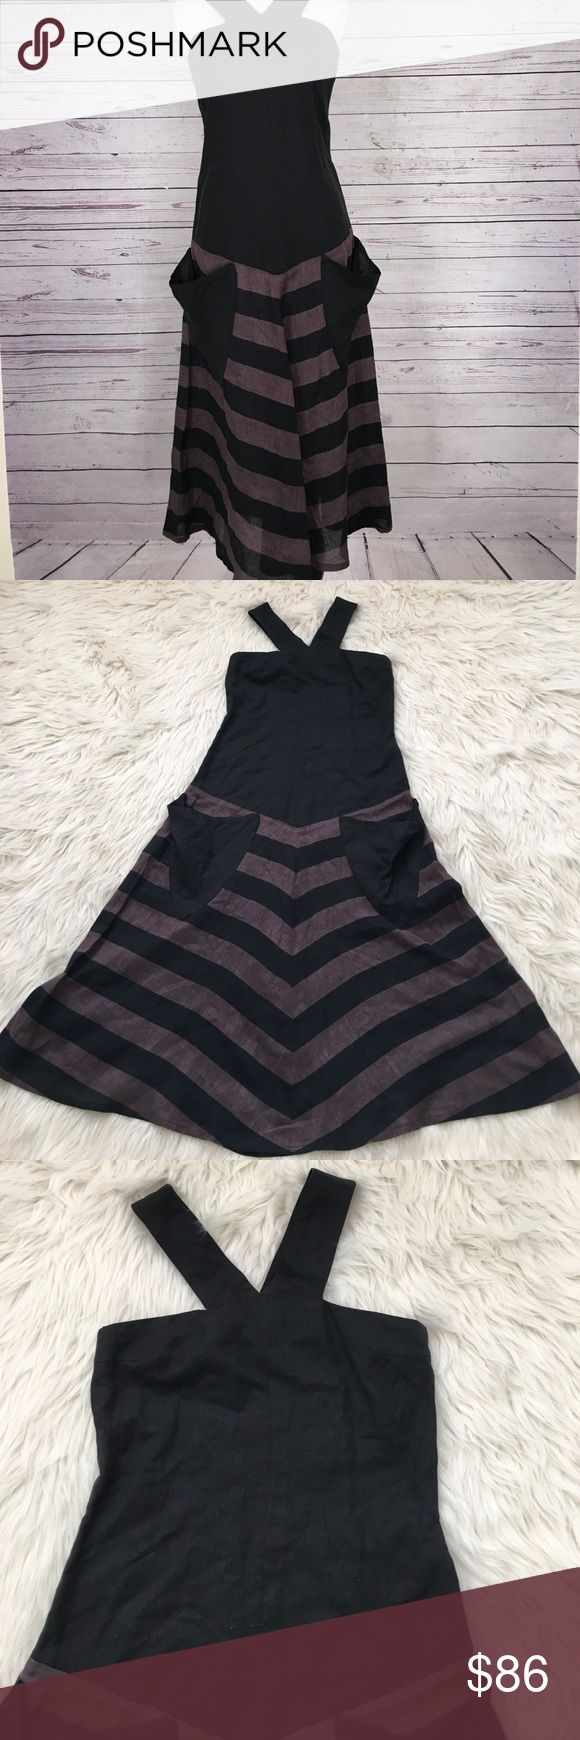 Sonia Rykiel runway chevron pocket dress EUC no rips or stains, no size description, see pictures for measurements Sonia Rykiel Dresses Maxi